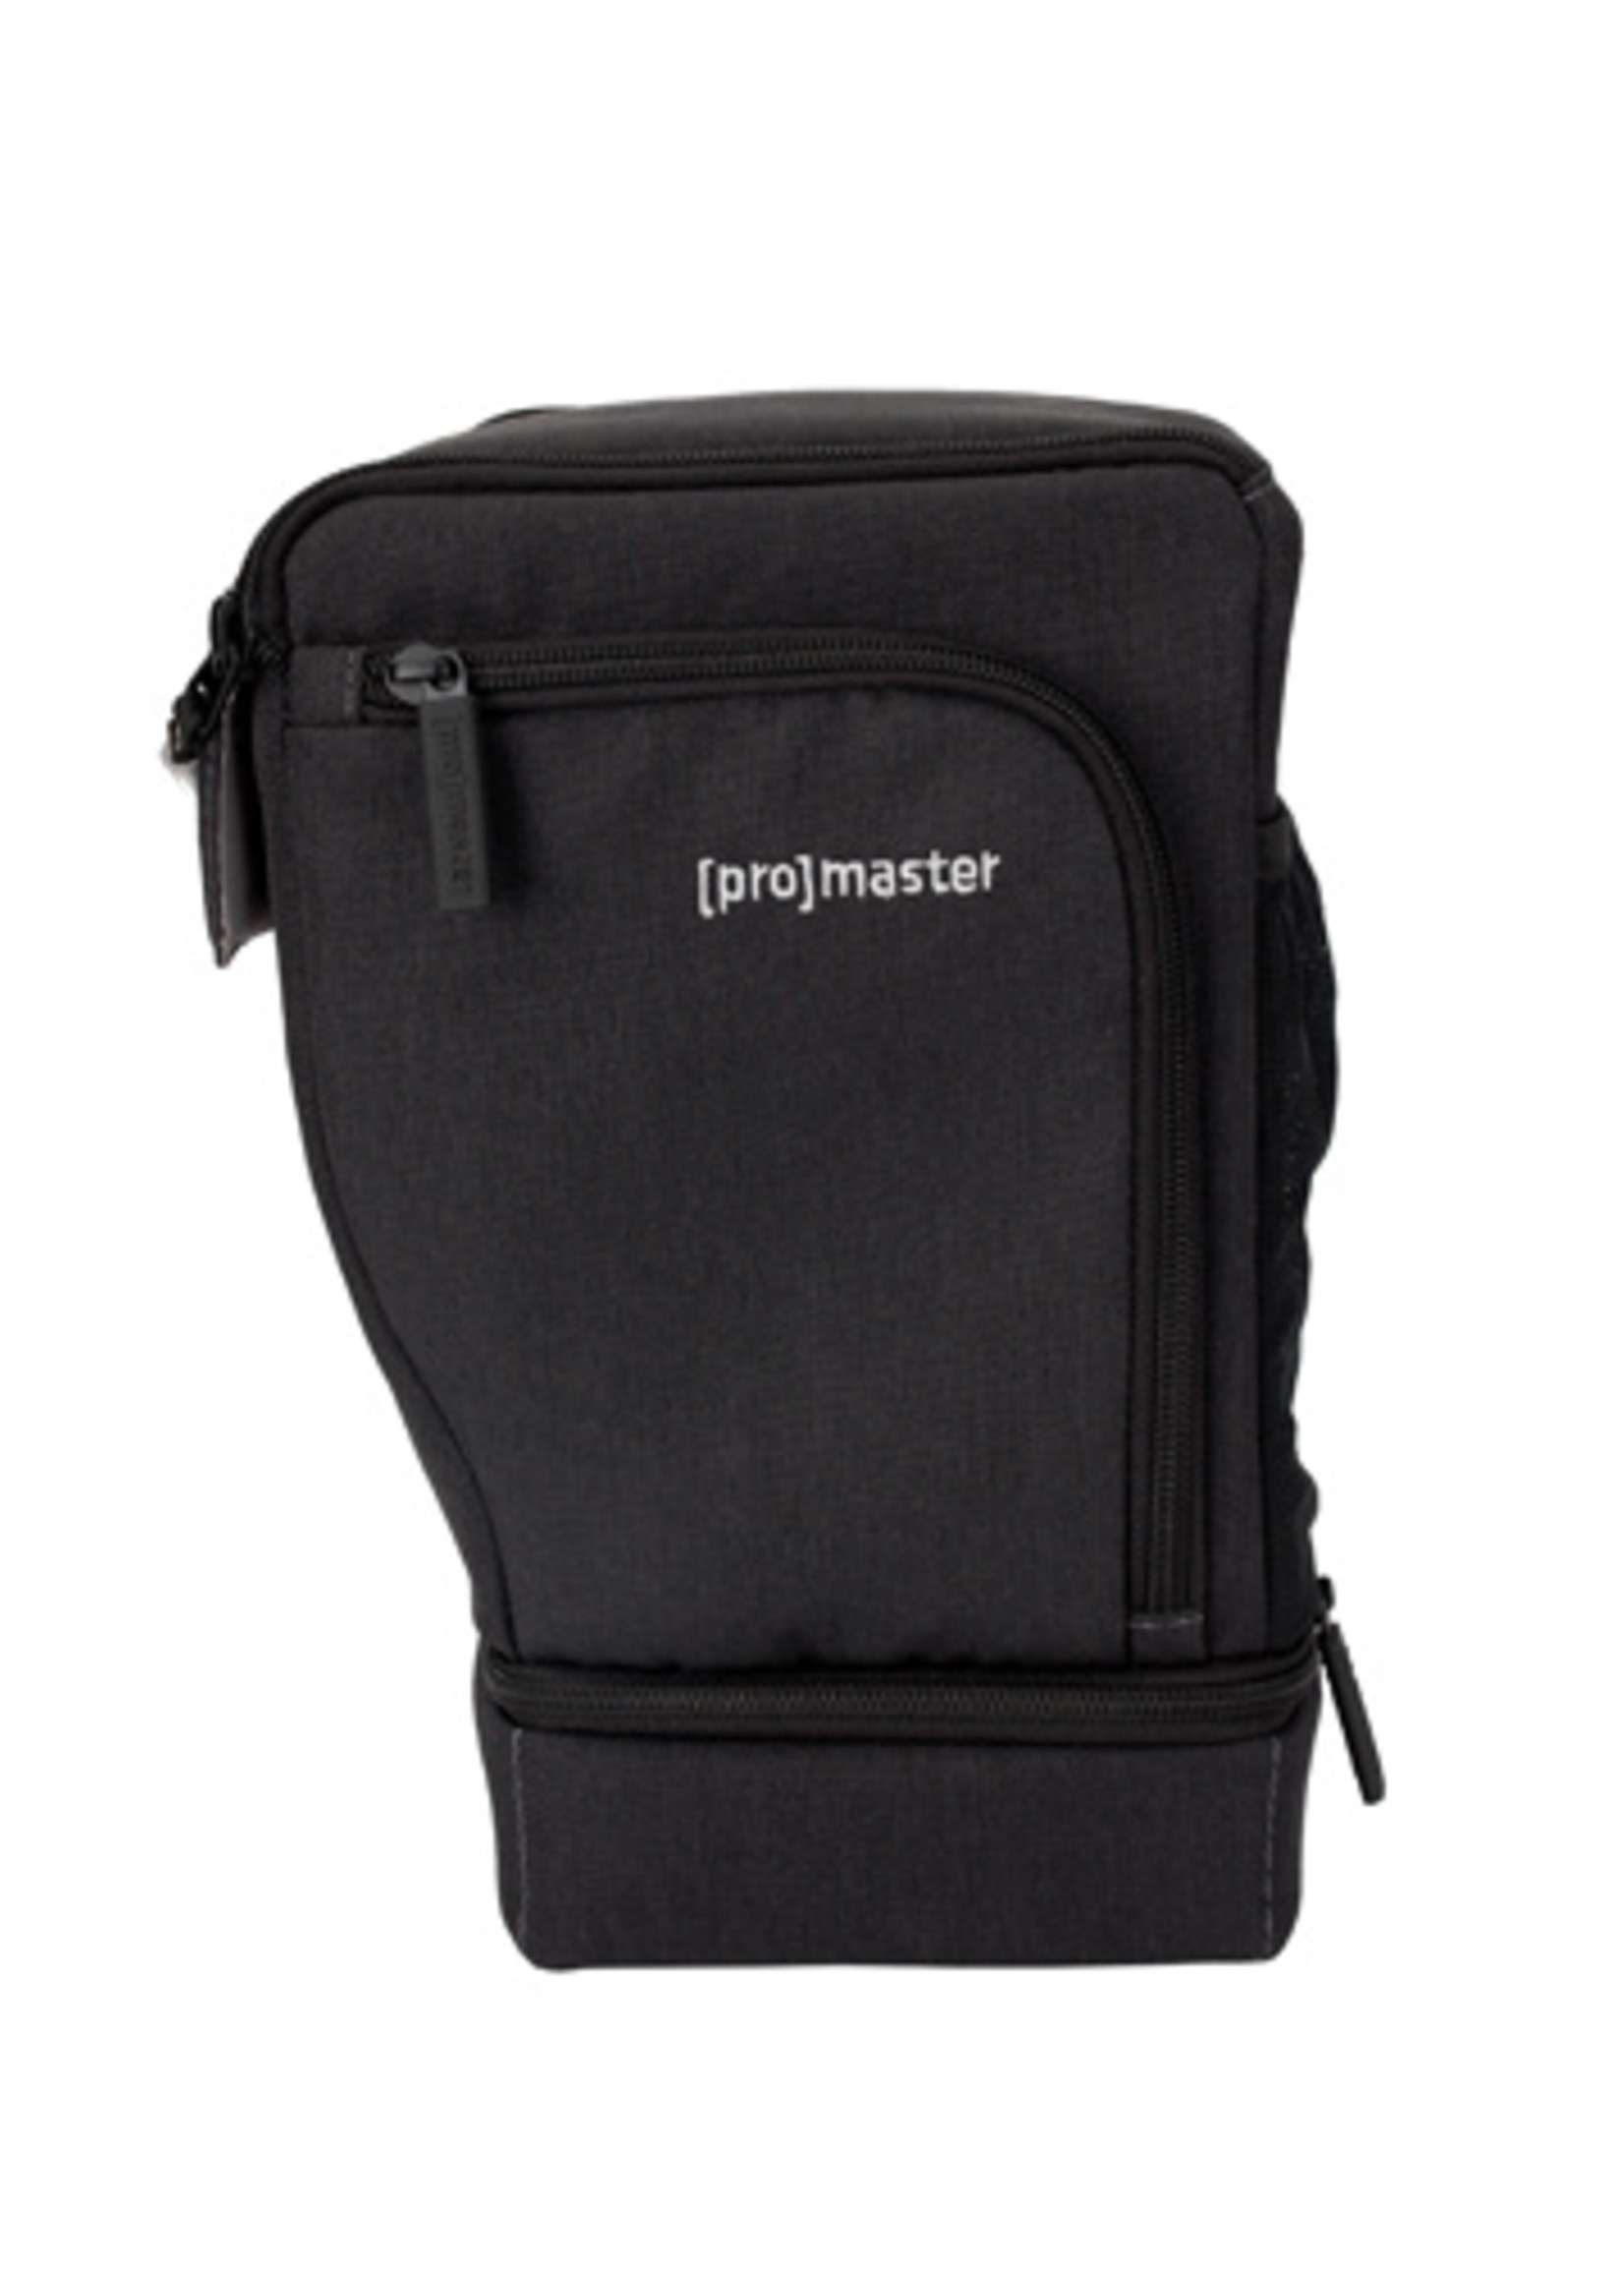 ProMaster ProMaster Holster Cityscape 25 - CHARCOAL GREY - 2021